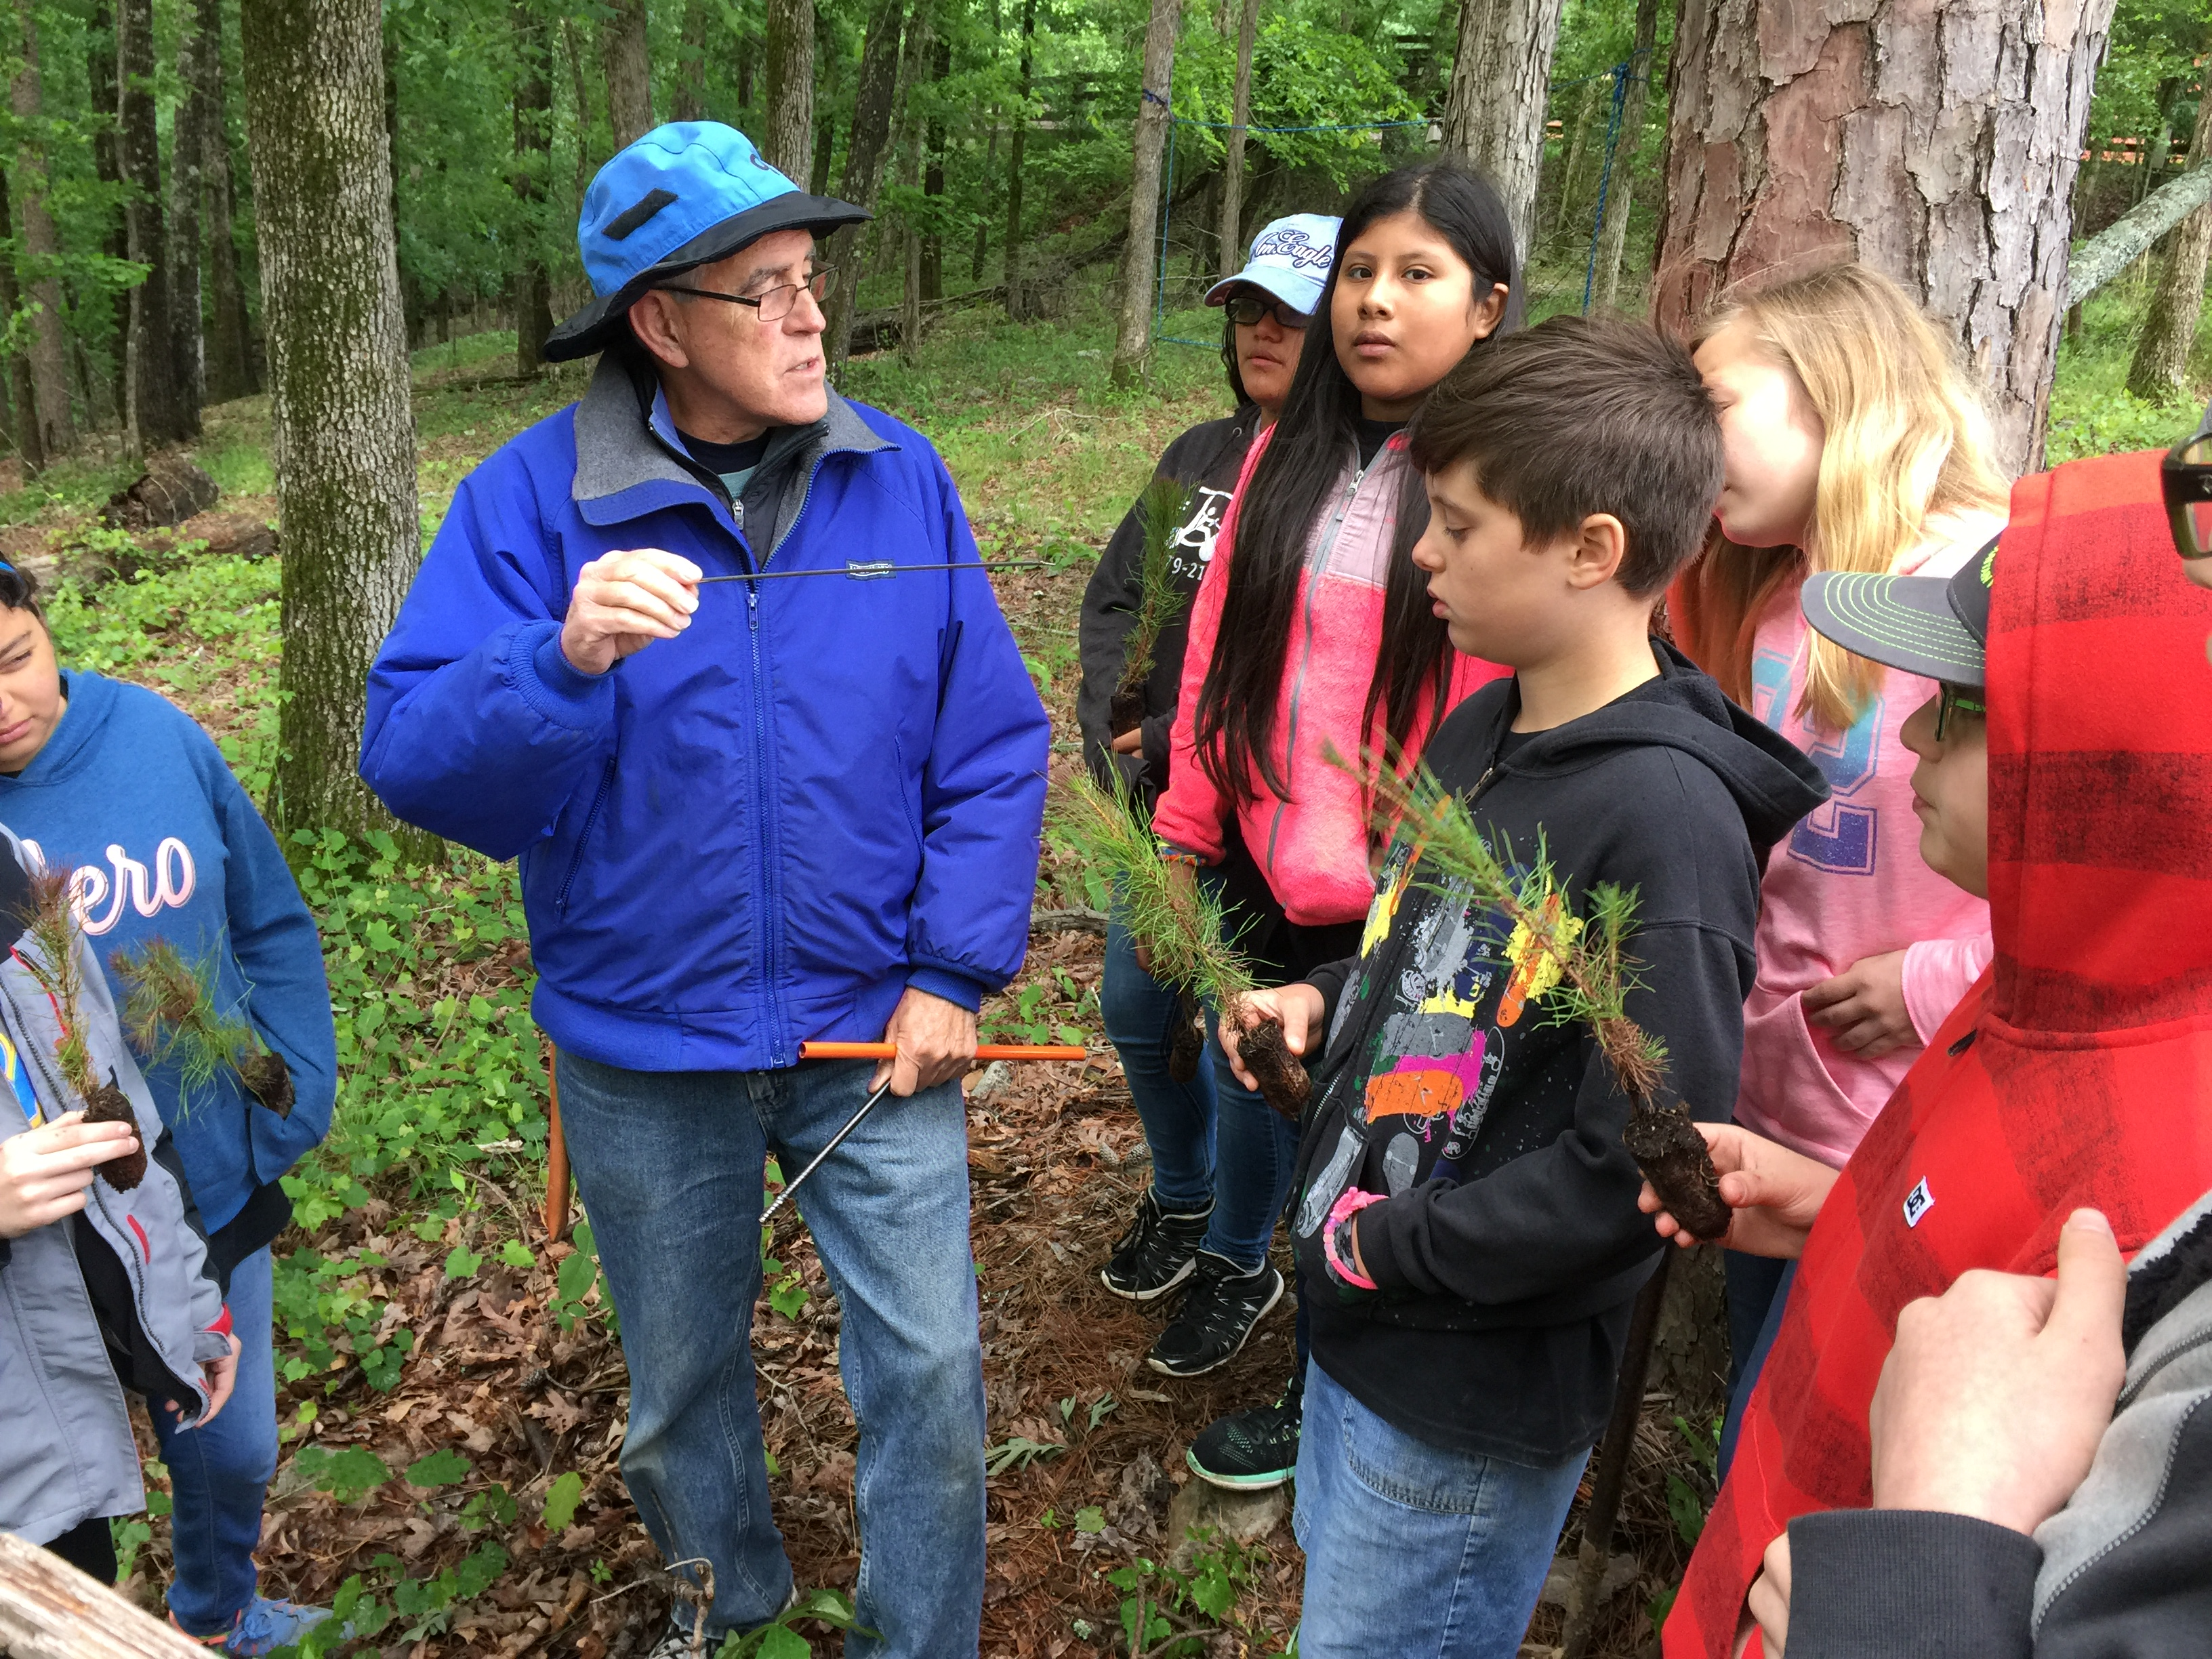 Basic Guidelines to Organize an Outdoor School Program